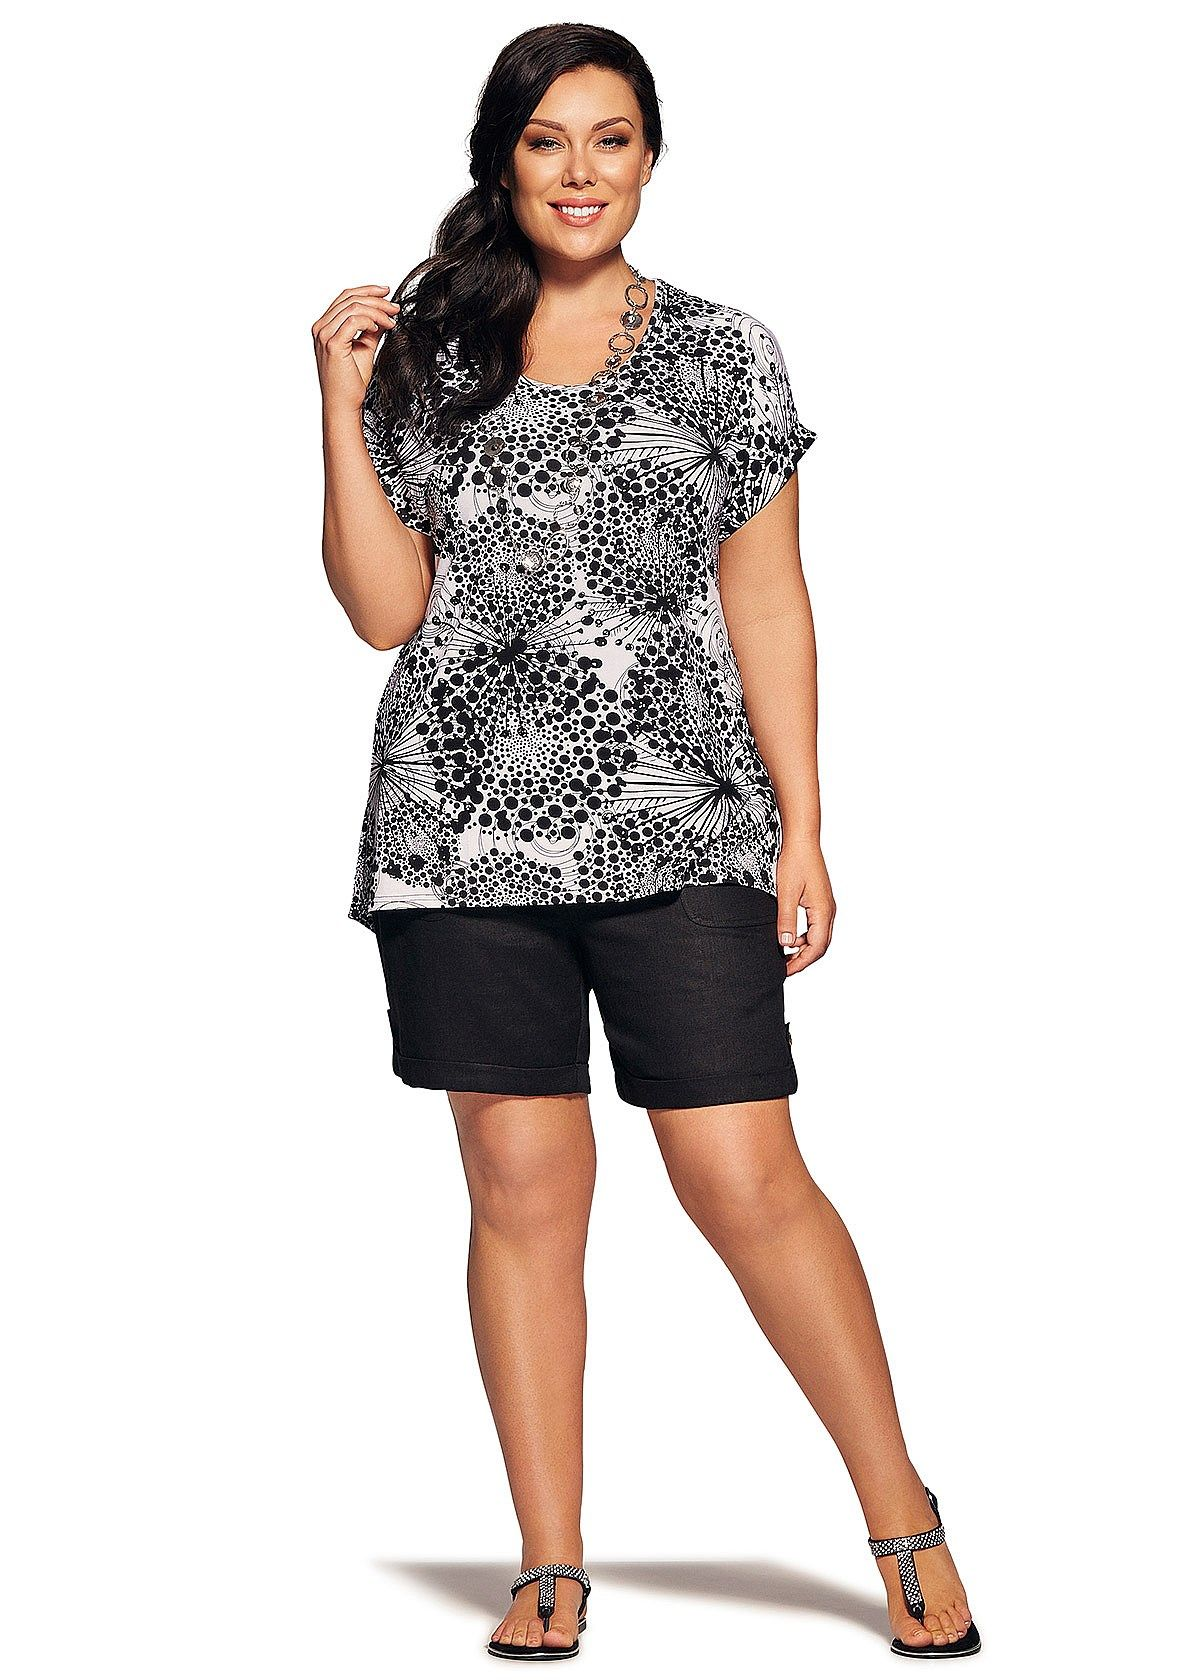 Plus Size Womens Clothing Large Size Fashion Clothes For Women In